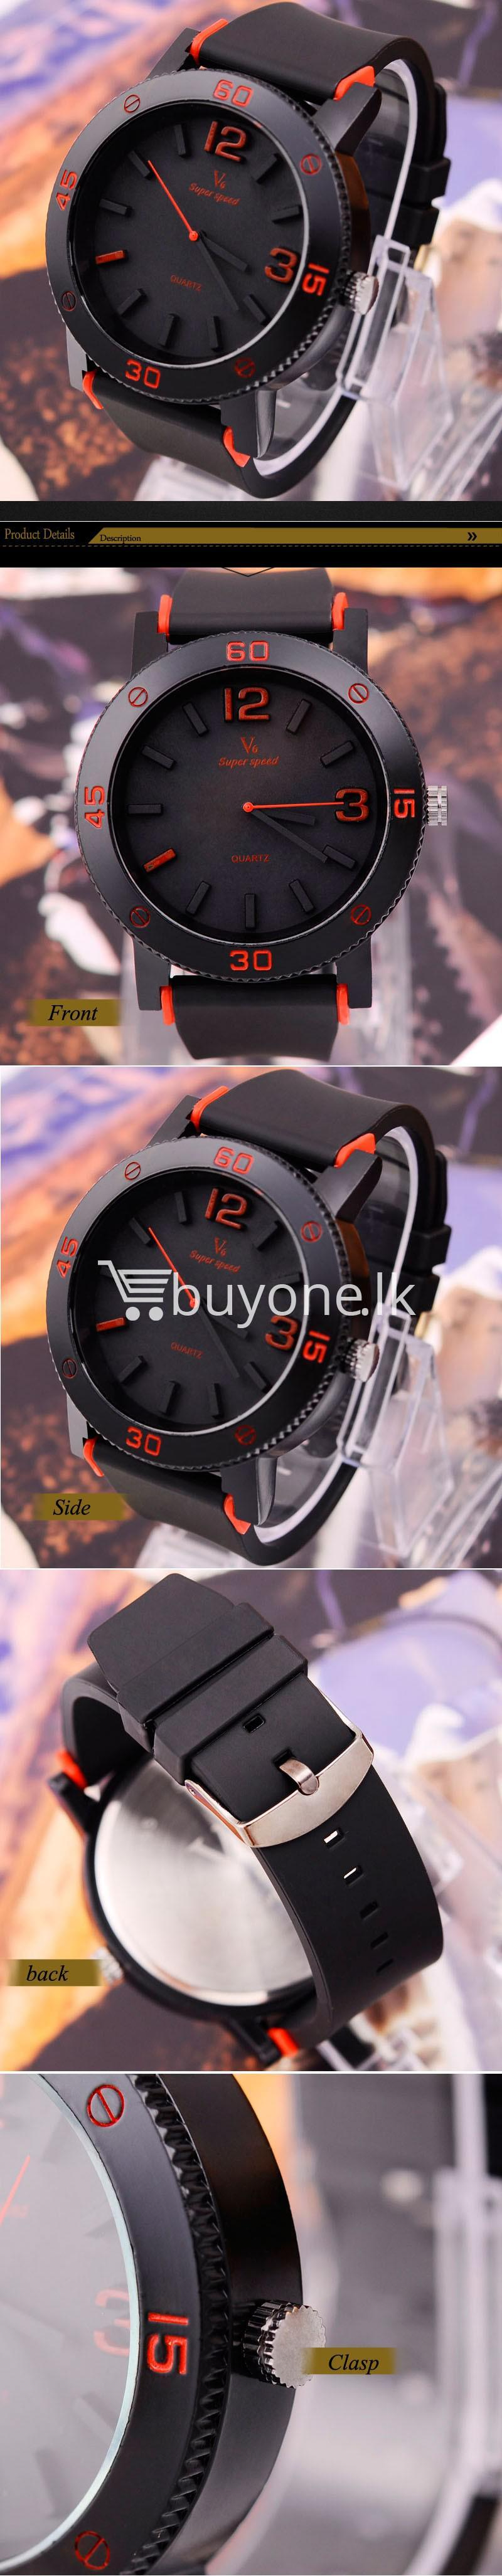 v6 brand fashion quartz sports watches men watches special best offer buy one lk sri lanka 24901 - V6 Brand Fashion Quartz Sports Watches